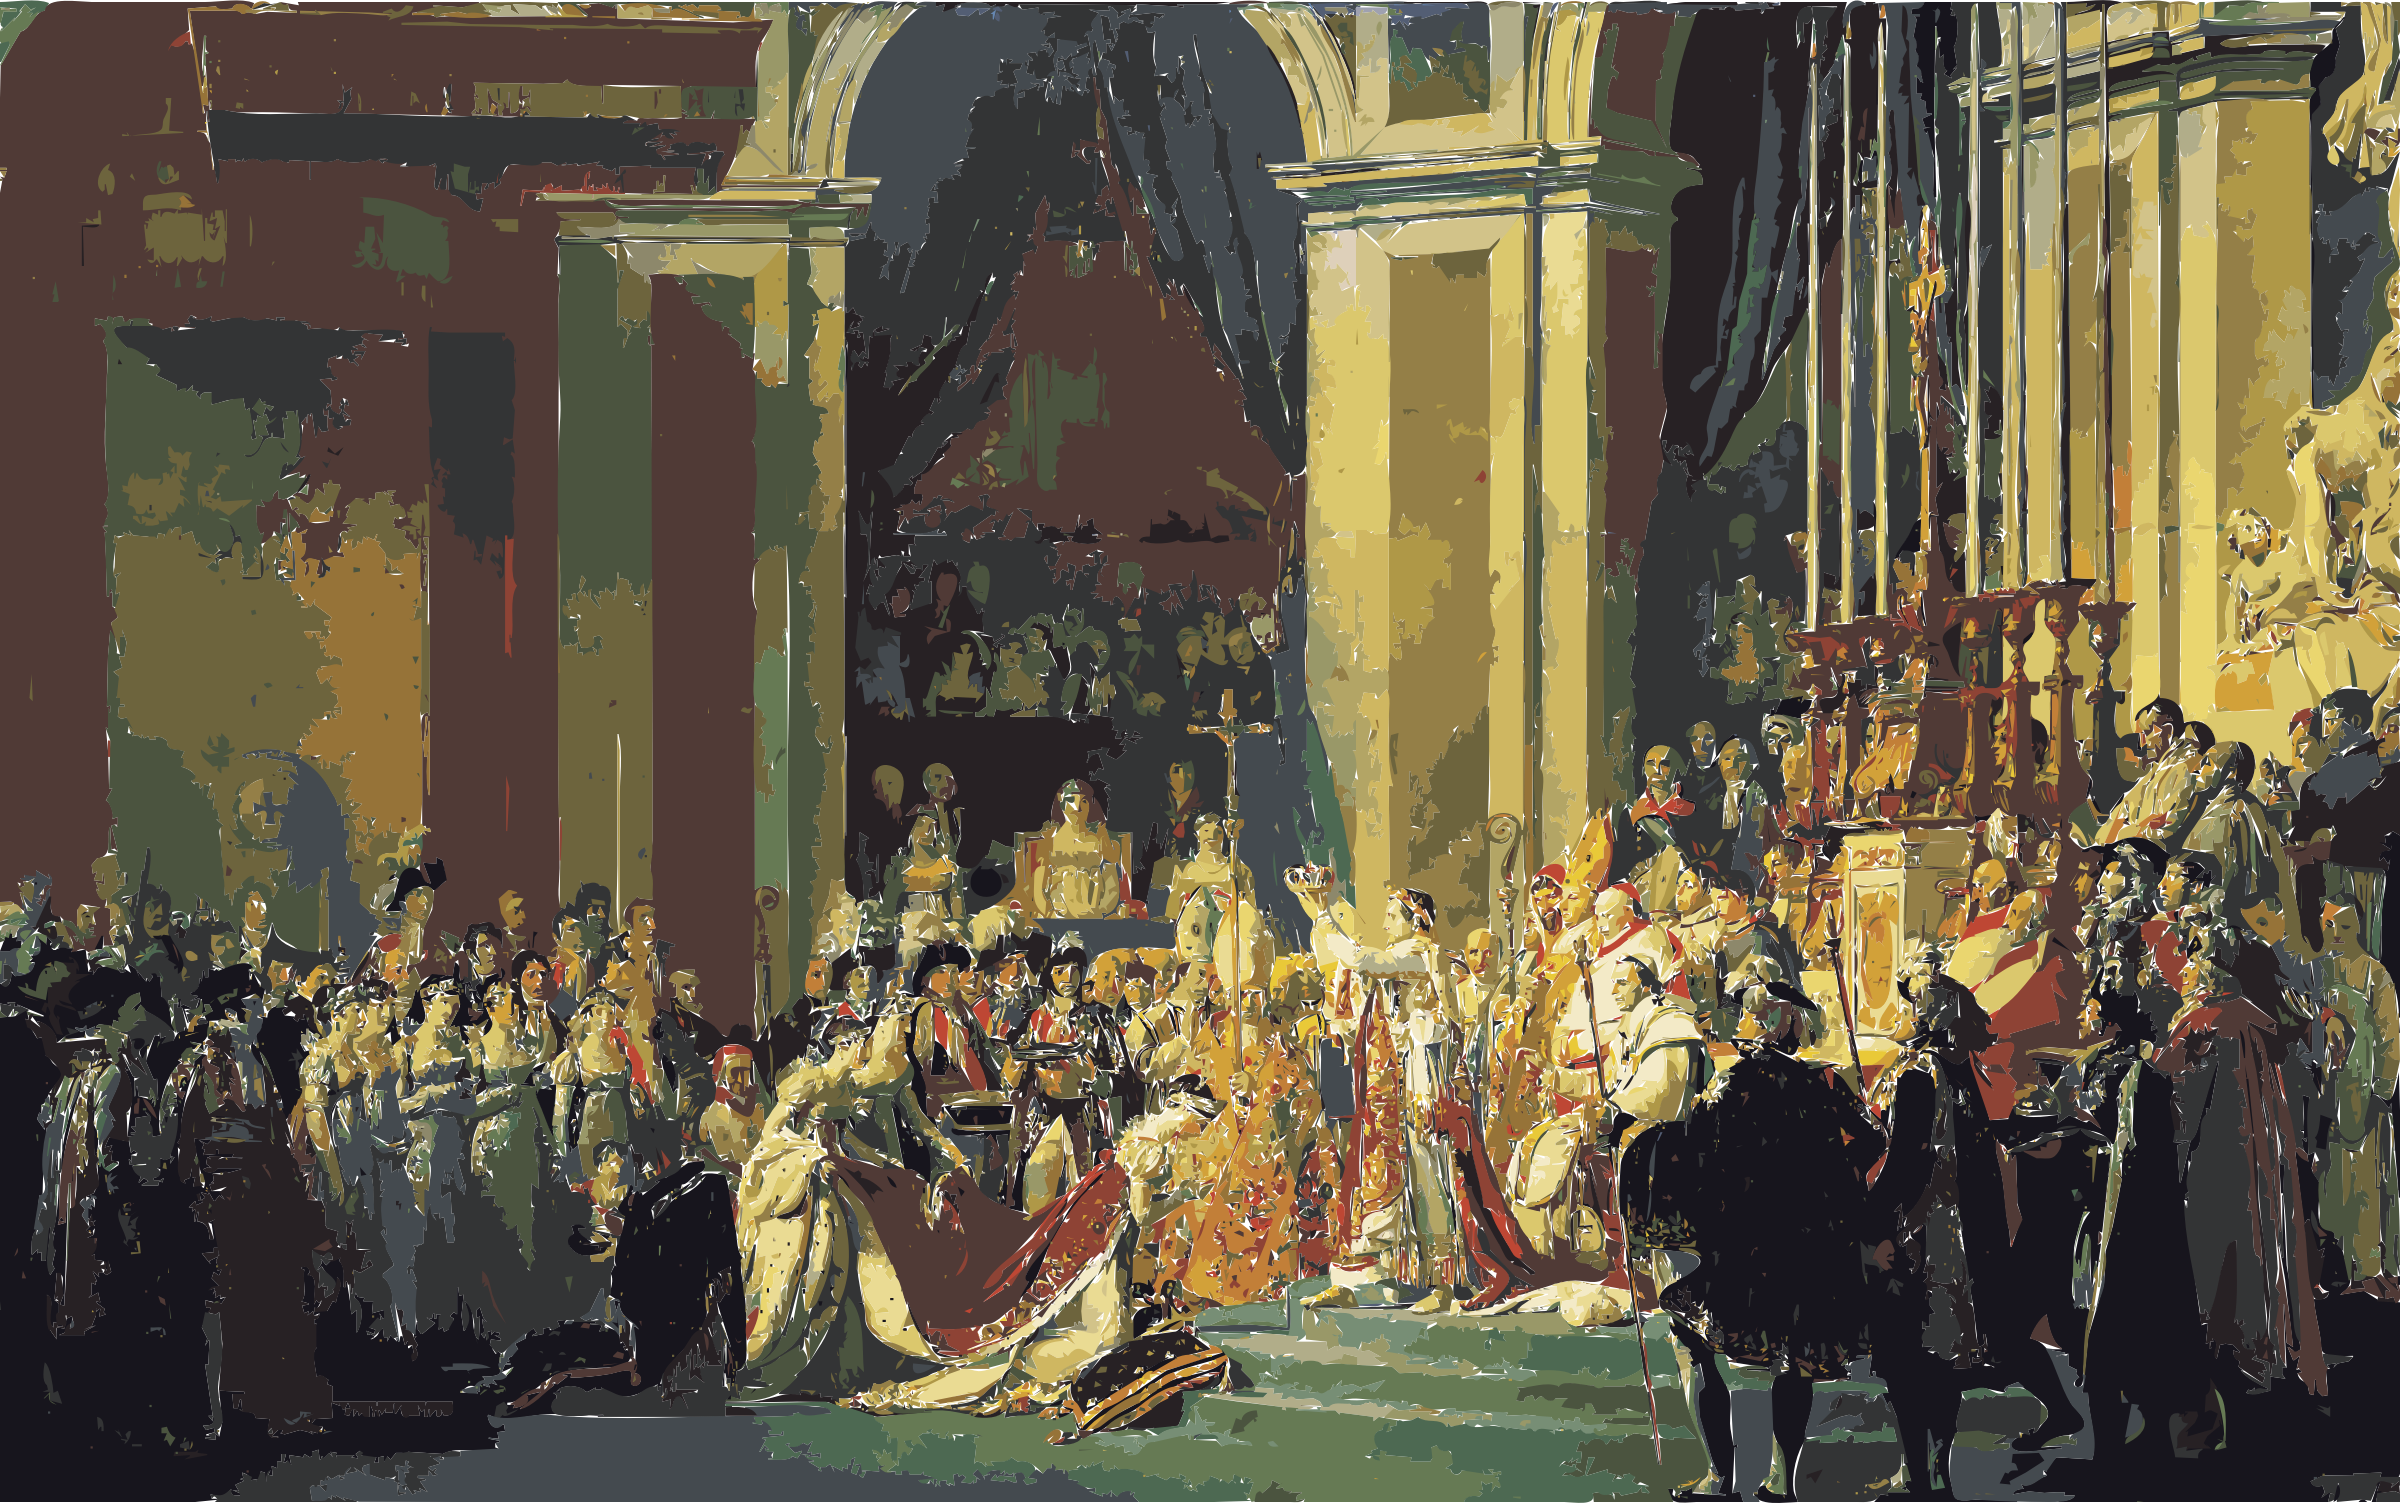 Jacques-Louis David, The Coronation of Napoleon edit by 3we2nn+8w9uc0fun68aw